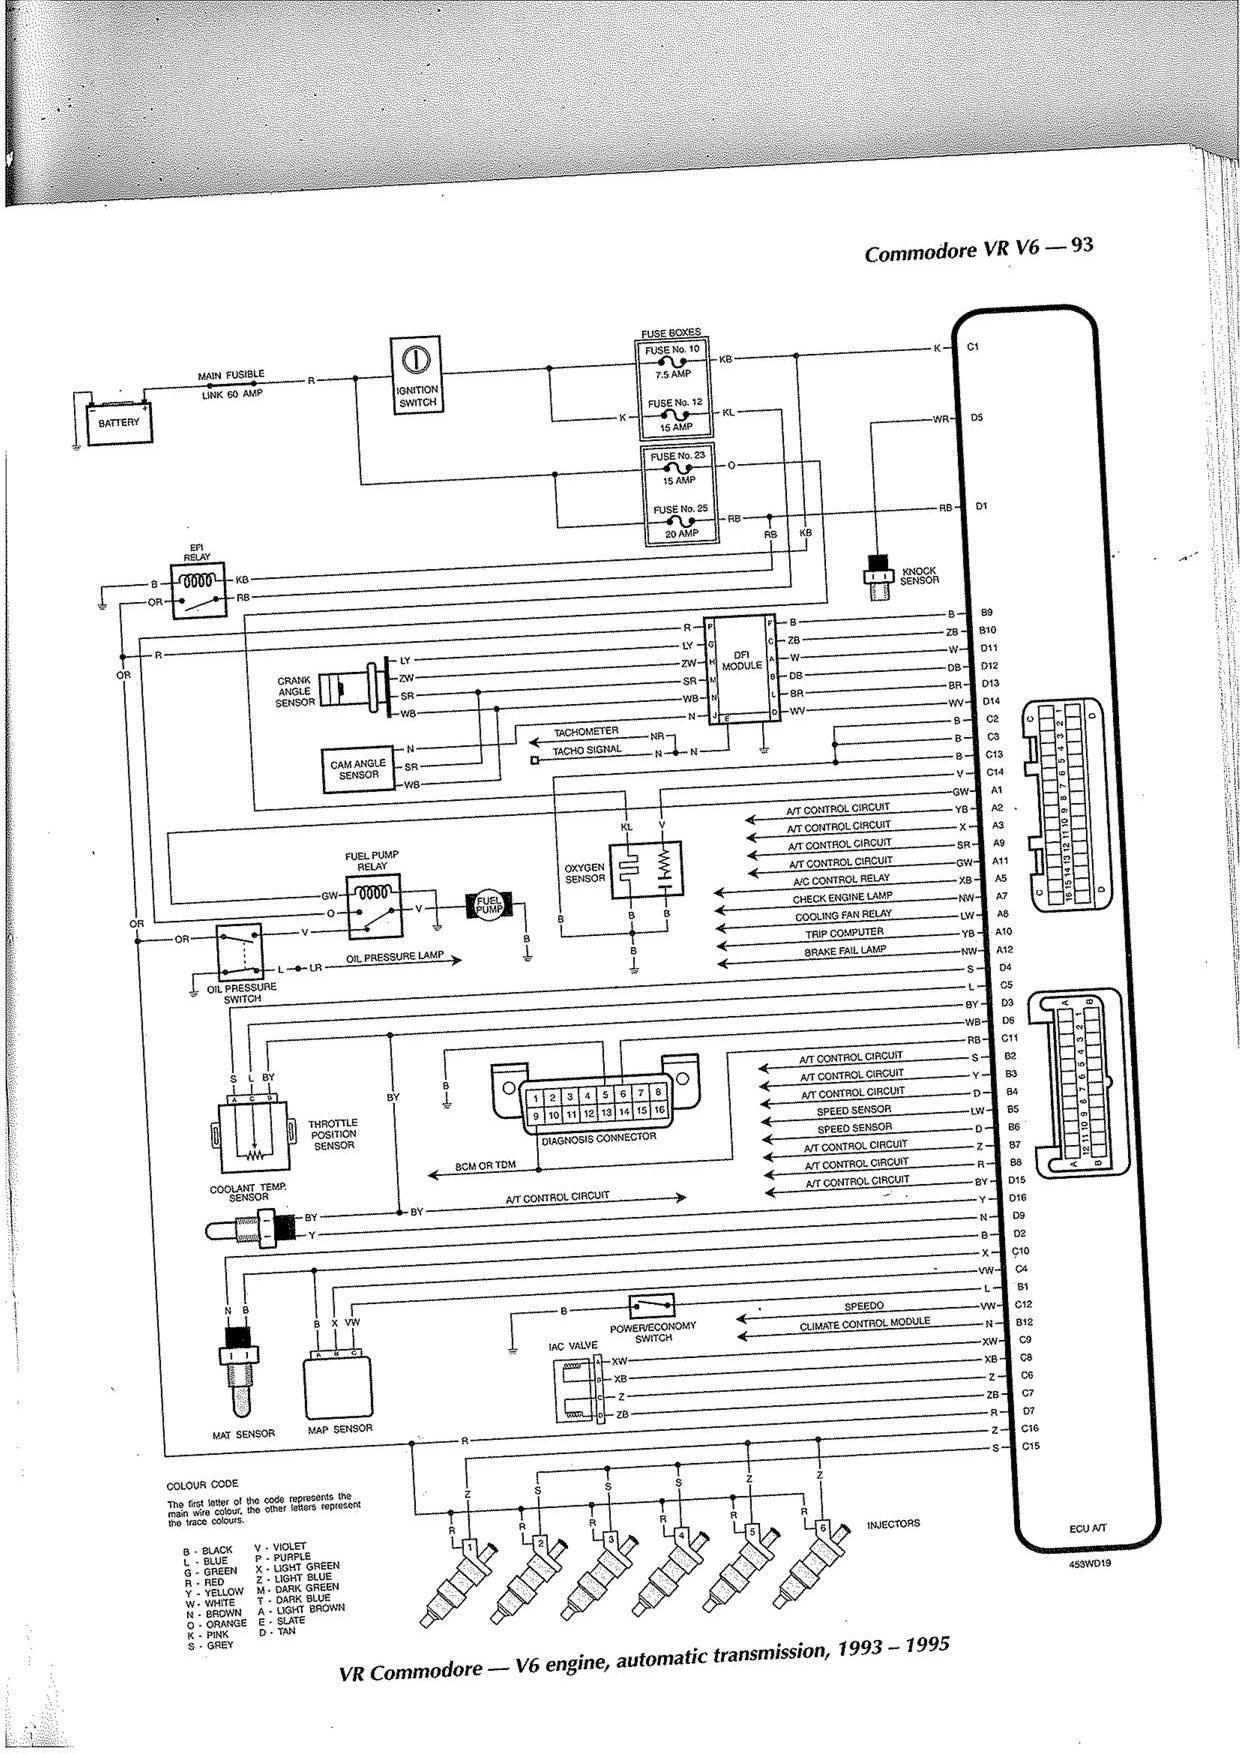 Vz Headlight Wiring Diagram | Manual E-Books - Vy Commodore Trailer Wiring Diagram